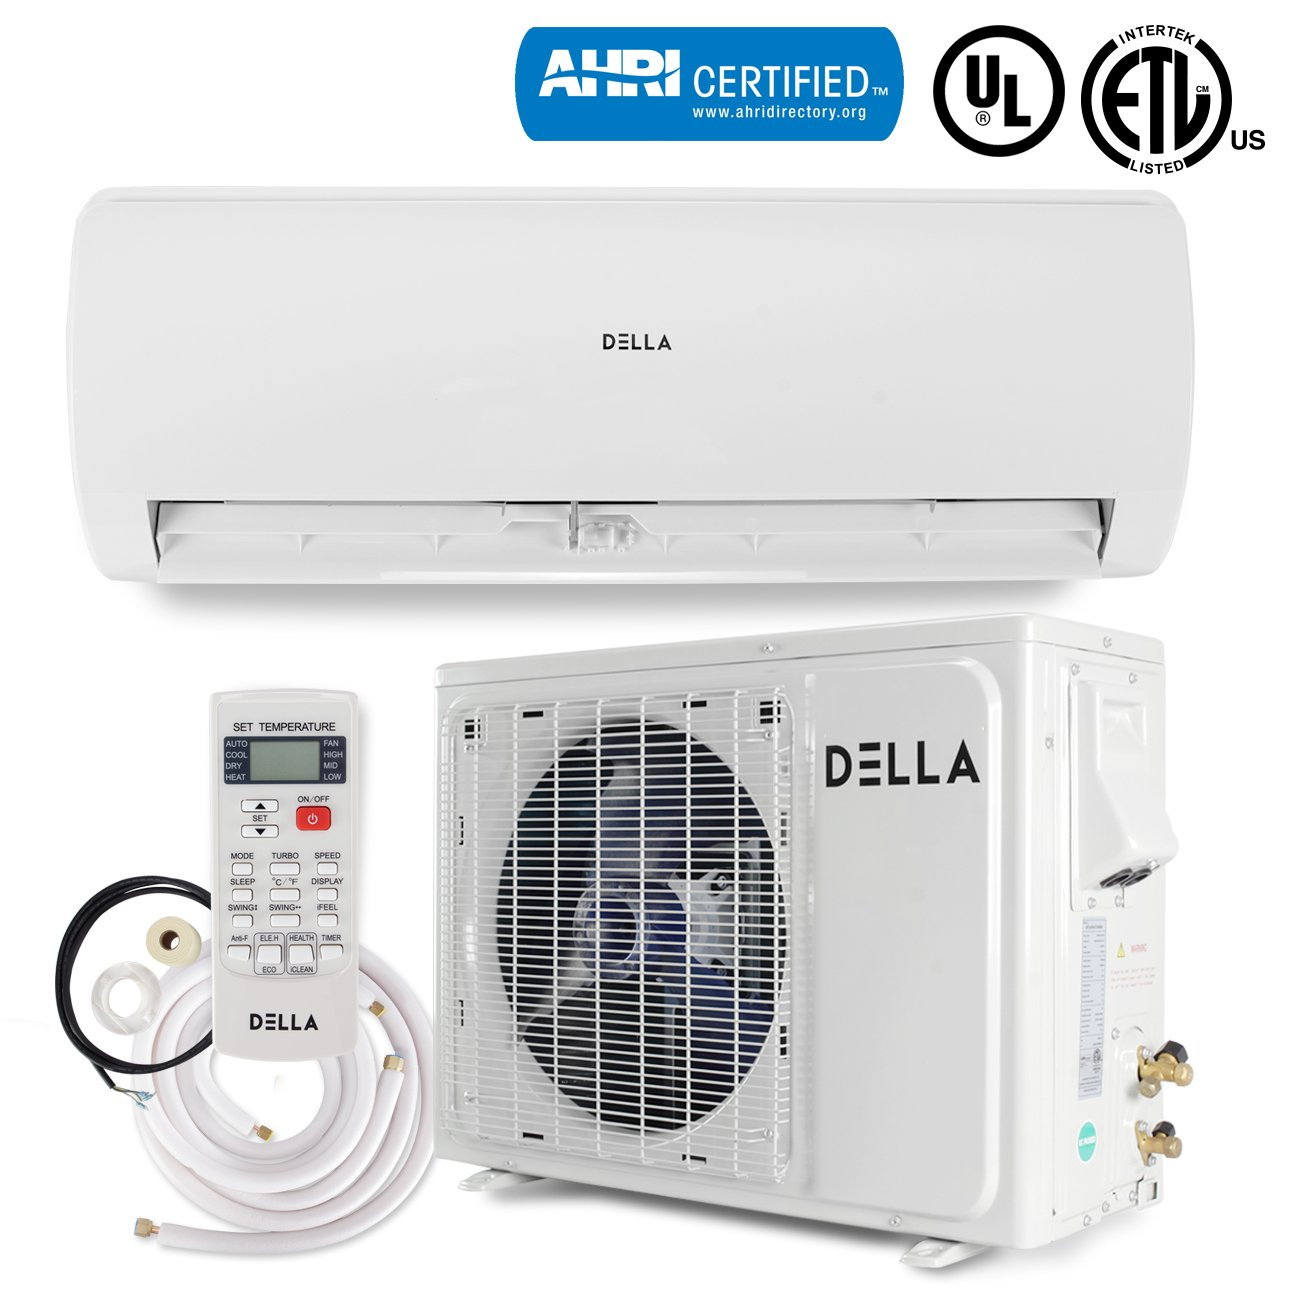 DELLA Ductless Mini Split Inverter Wall Mount AC Air Conditioner with Heat Pump (22 SEER) Energy Saver 12,000 BTU, 230V -AHRI Certified by DELLA